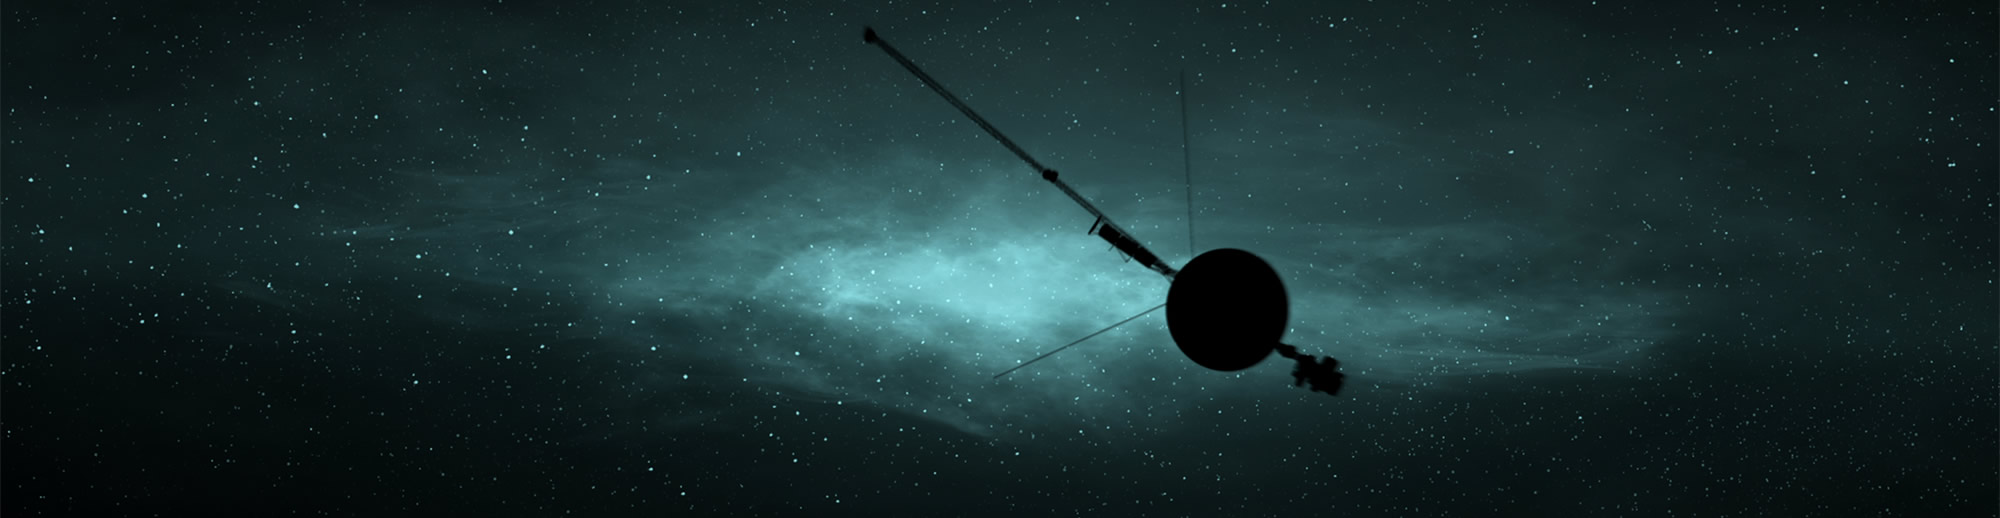 silhouette of Voyager with galaxy of stars behind it